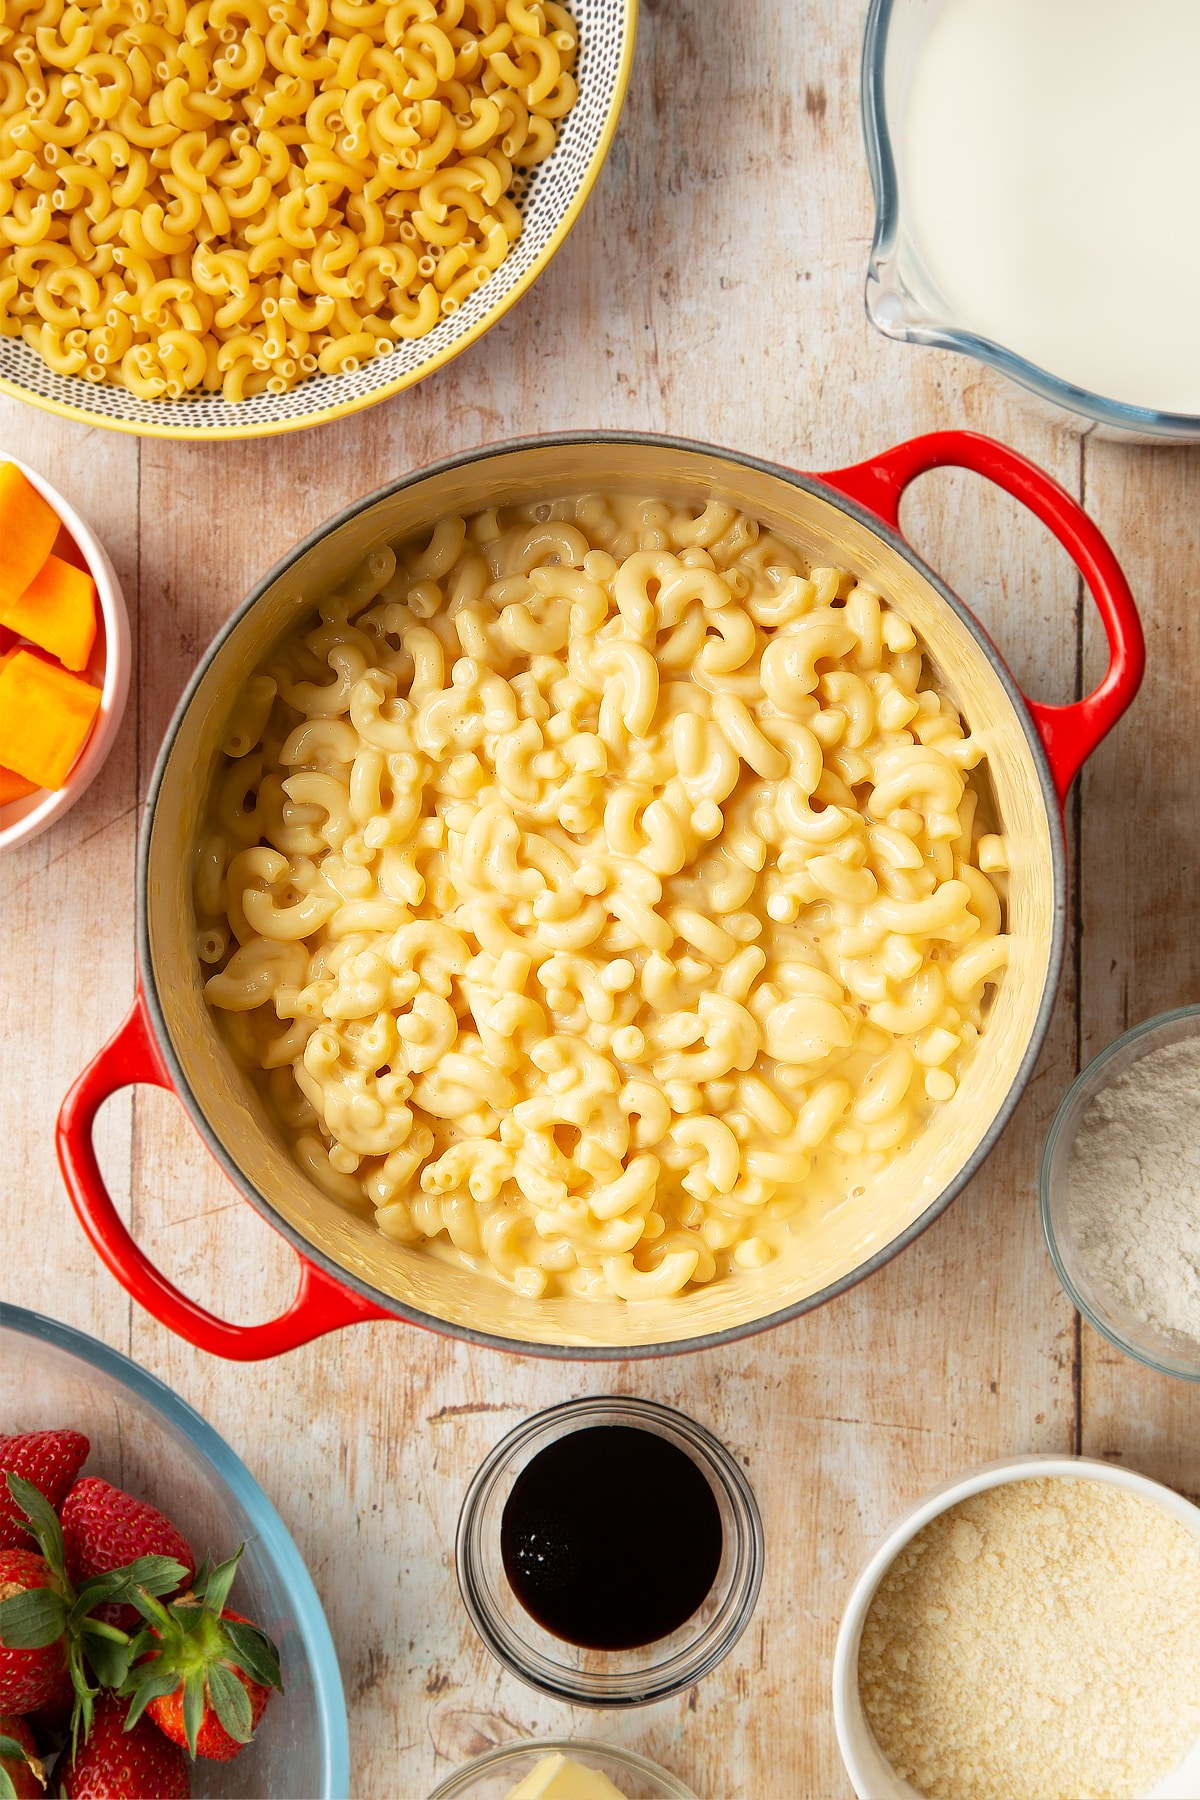 A saucepan containing macaroni stirred into a cheese and butternut squash sauce. The pan is surrounded by ingredients for strawberry pasta.